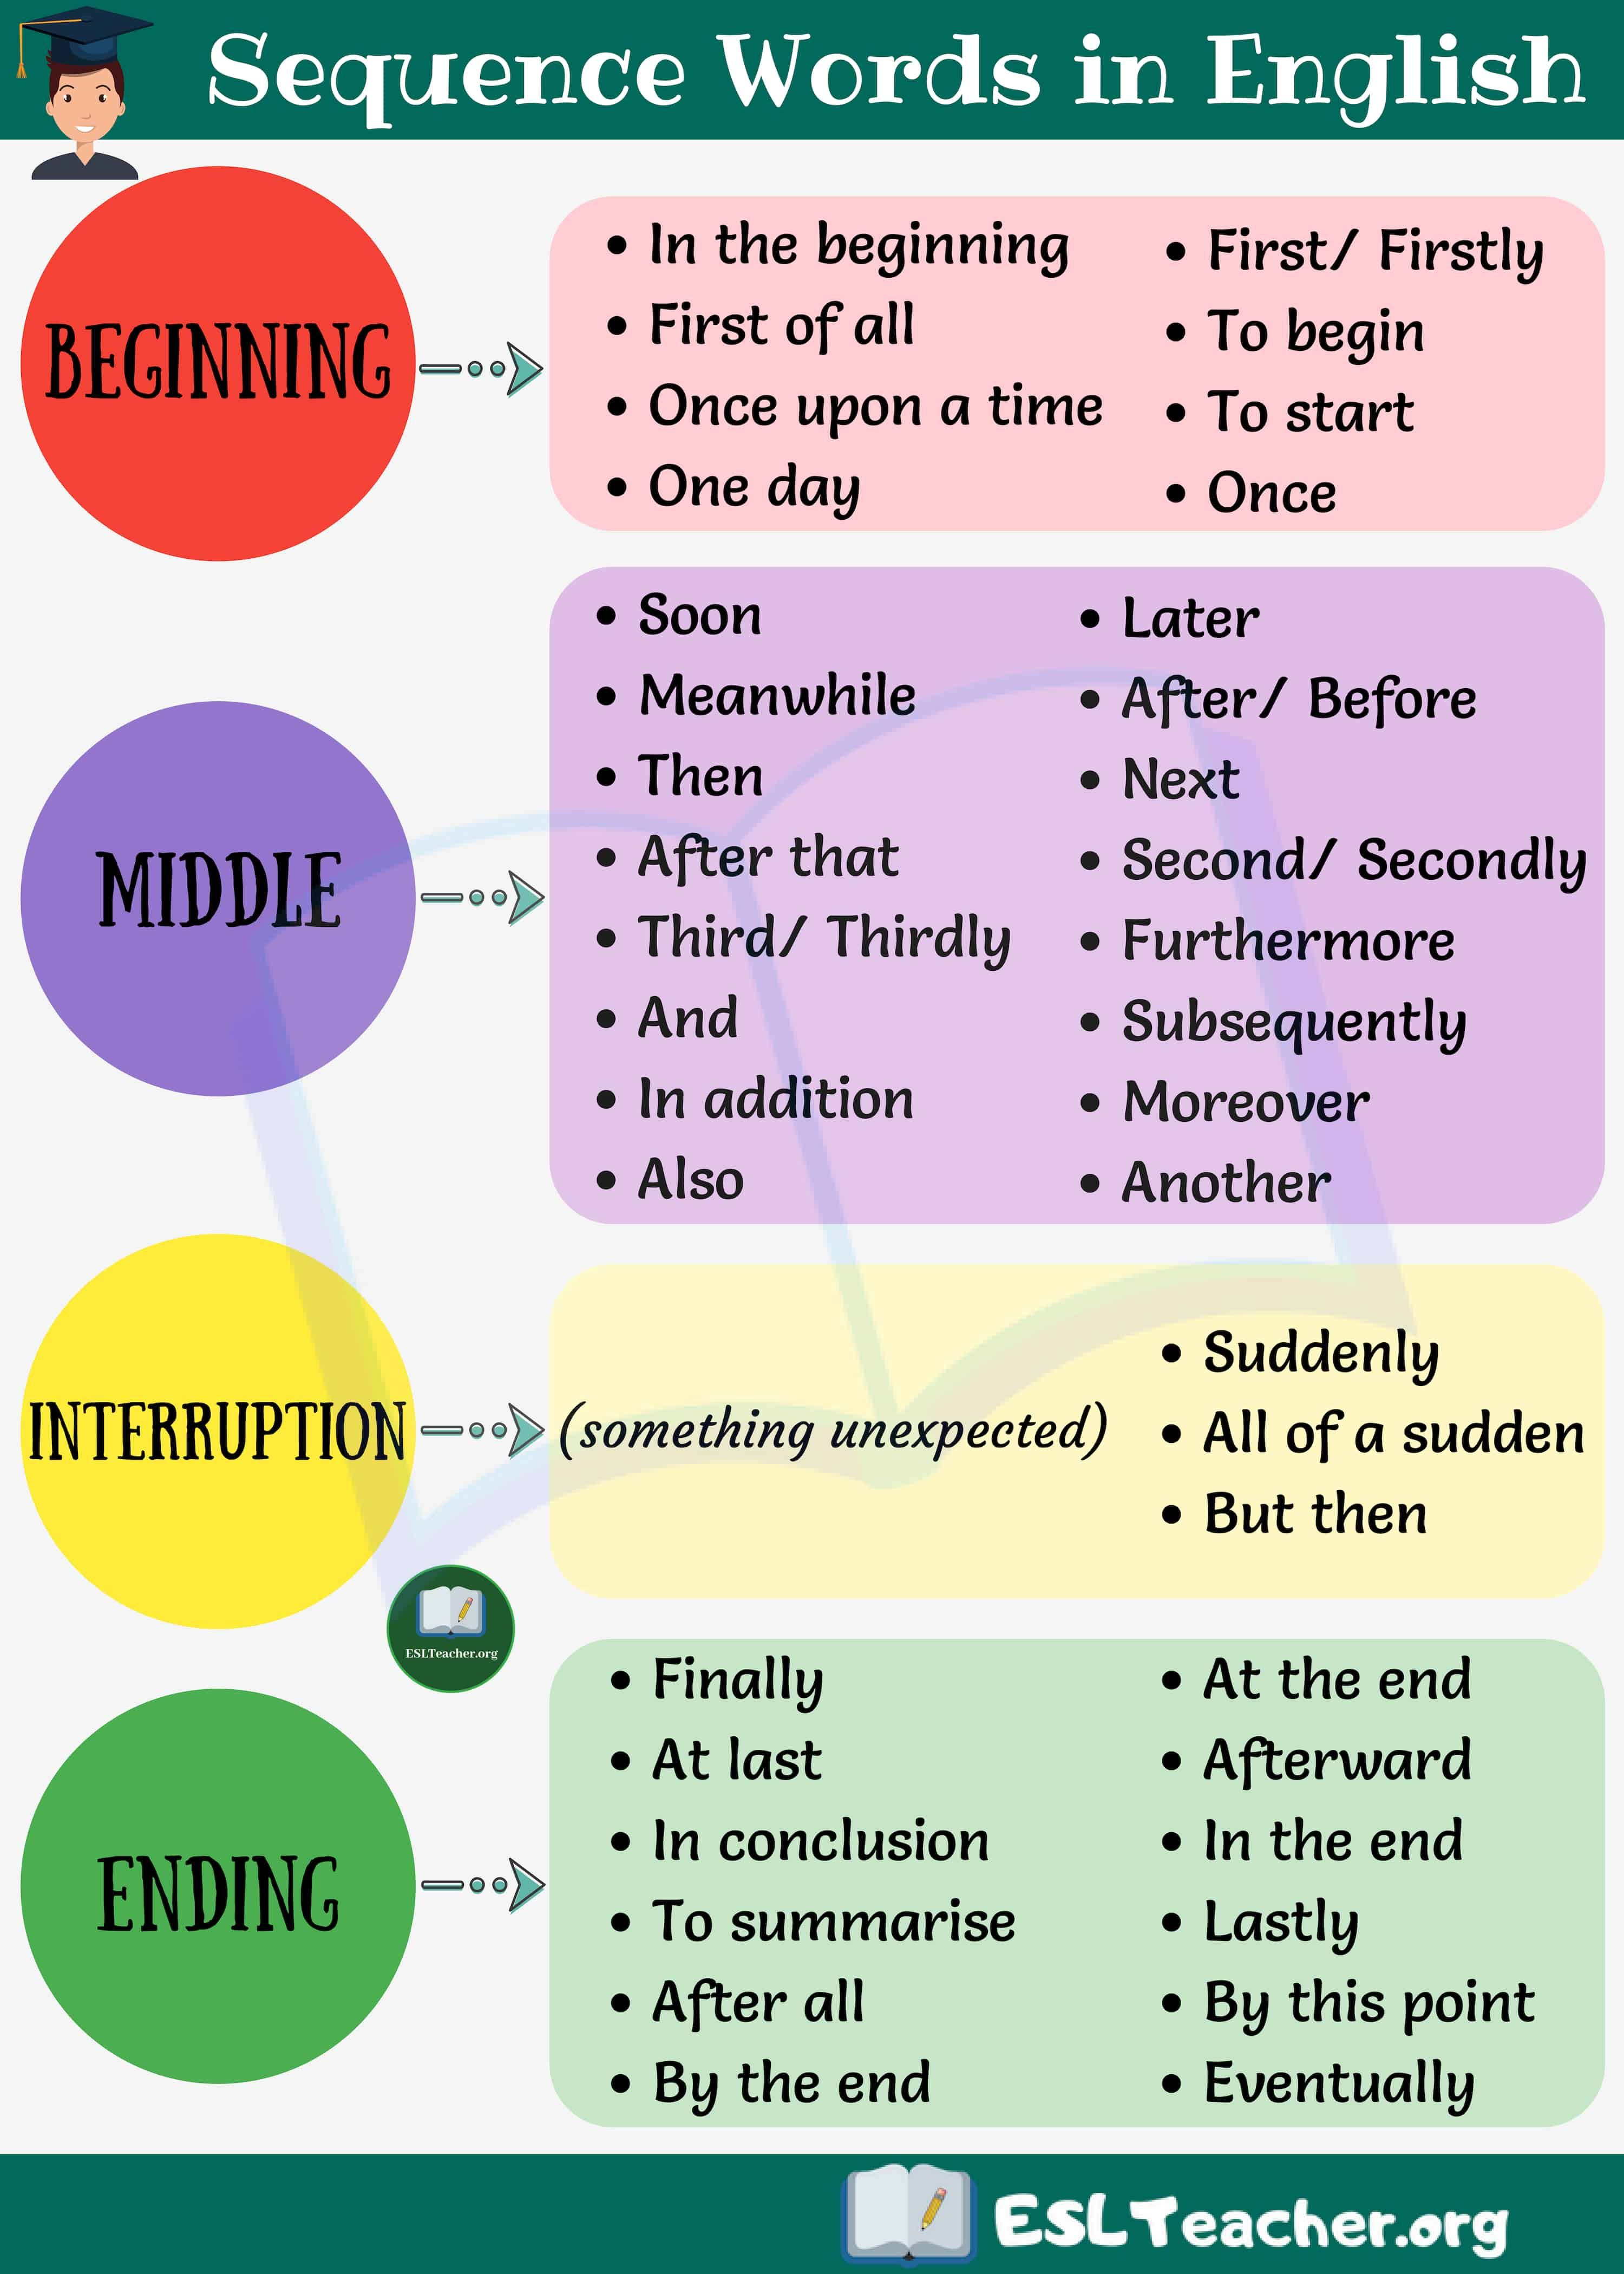 hight resolution of Useful Sequence Words in English   Essay writing skills